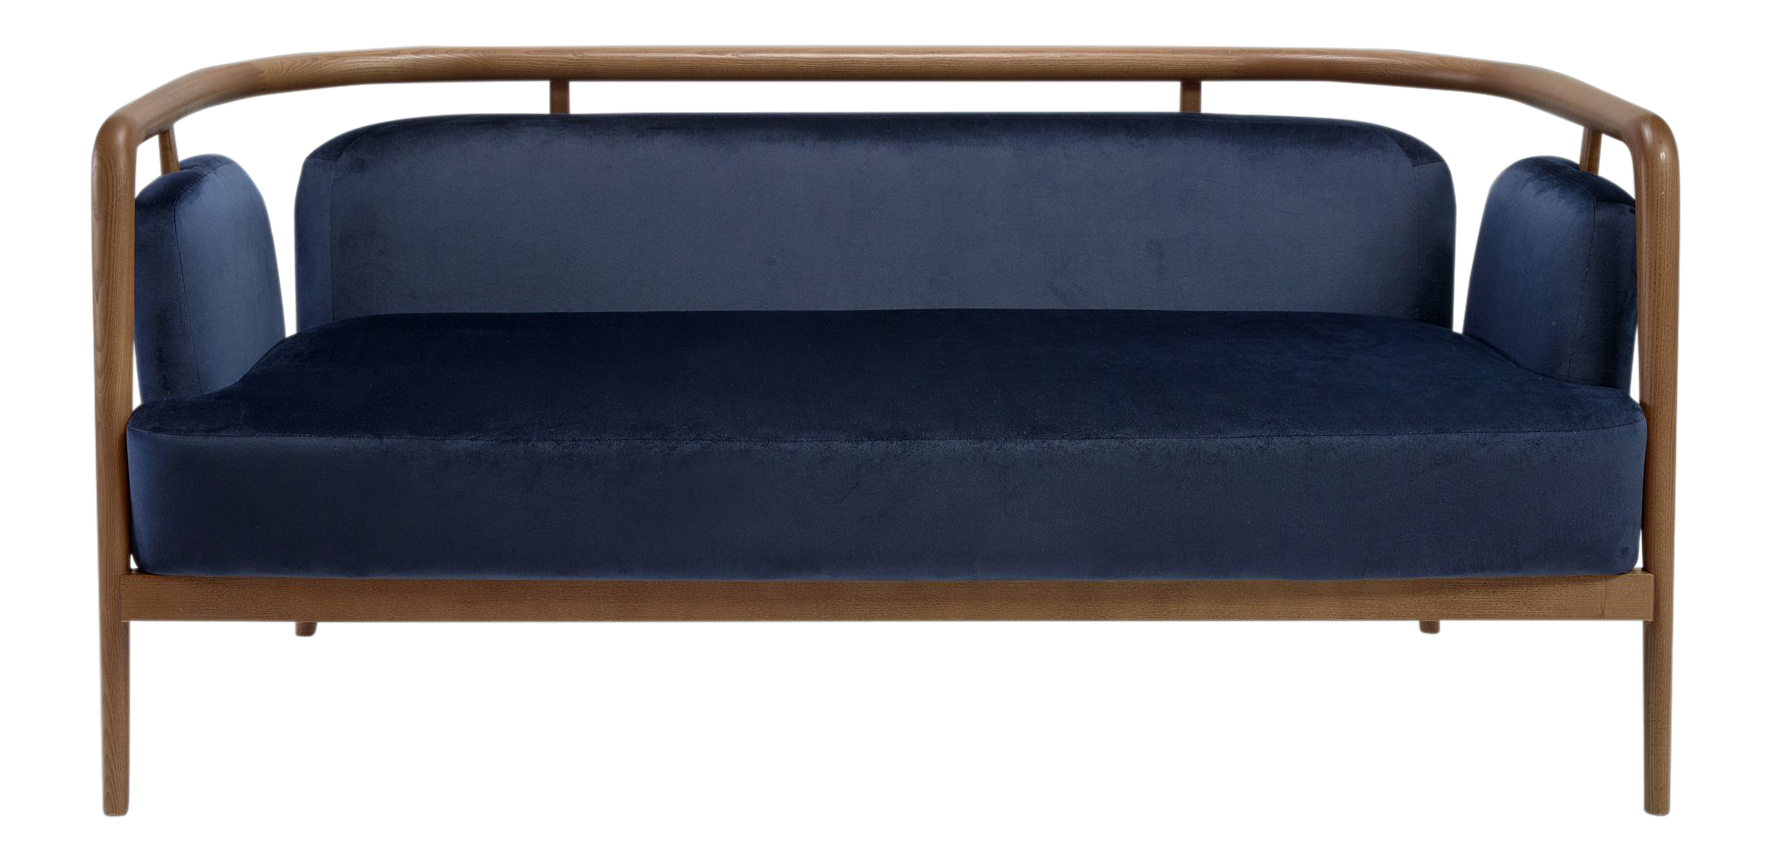 Fine Contemporary Midcentury Modern Walnut Sofa | DECASO